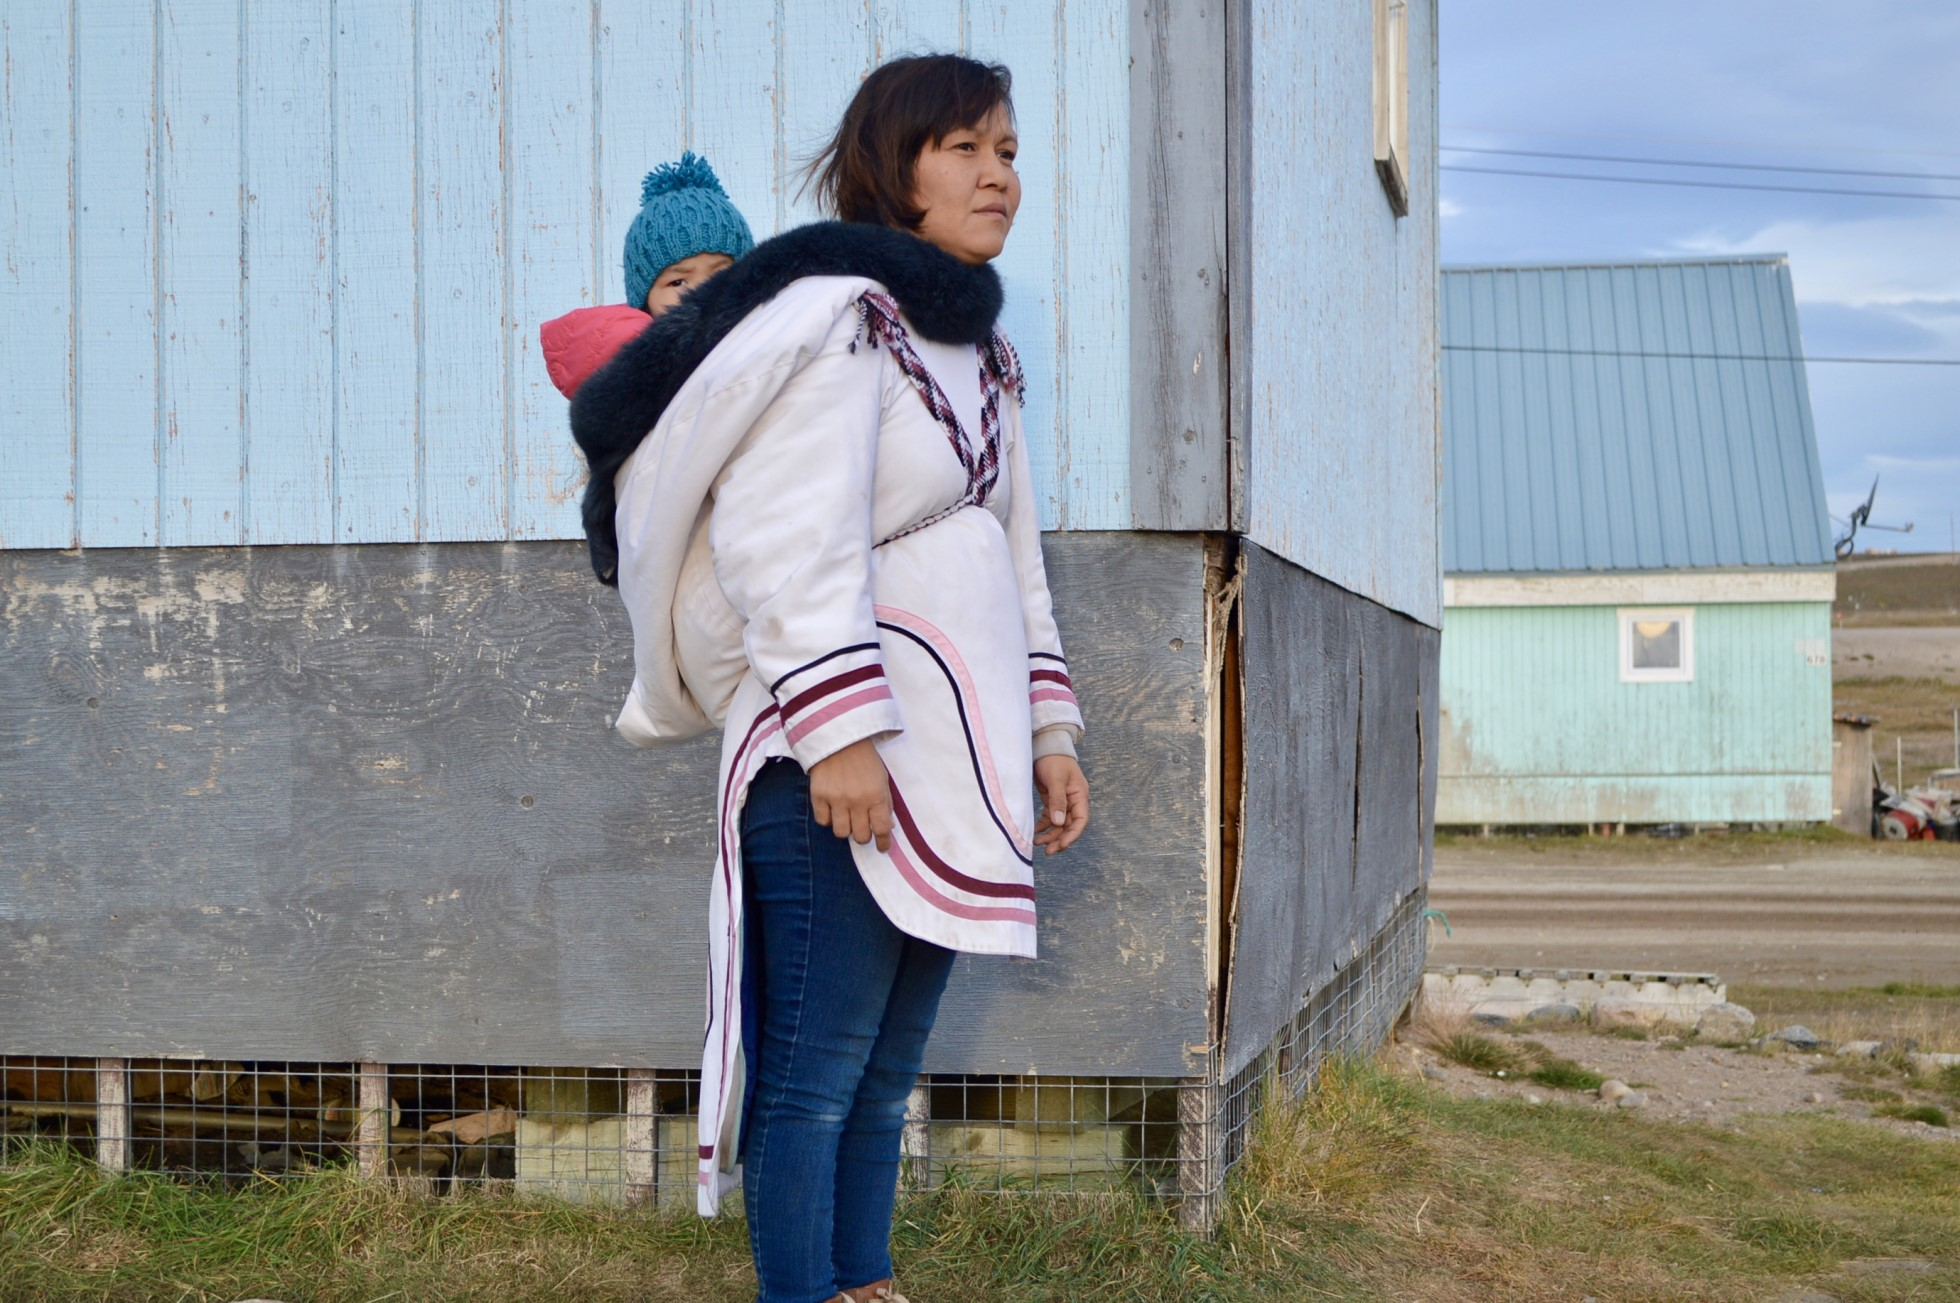 A woman is dressed in a amaut parka, carrying her child in a hood-like pocket on the back. The parka is made of off-white material with pink and purple trimming.